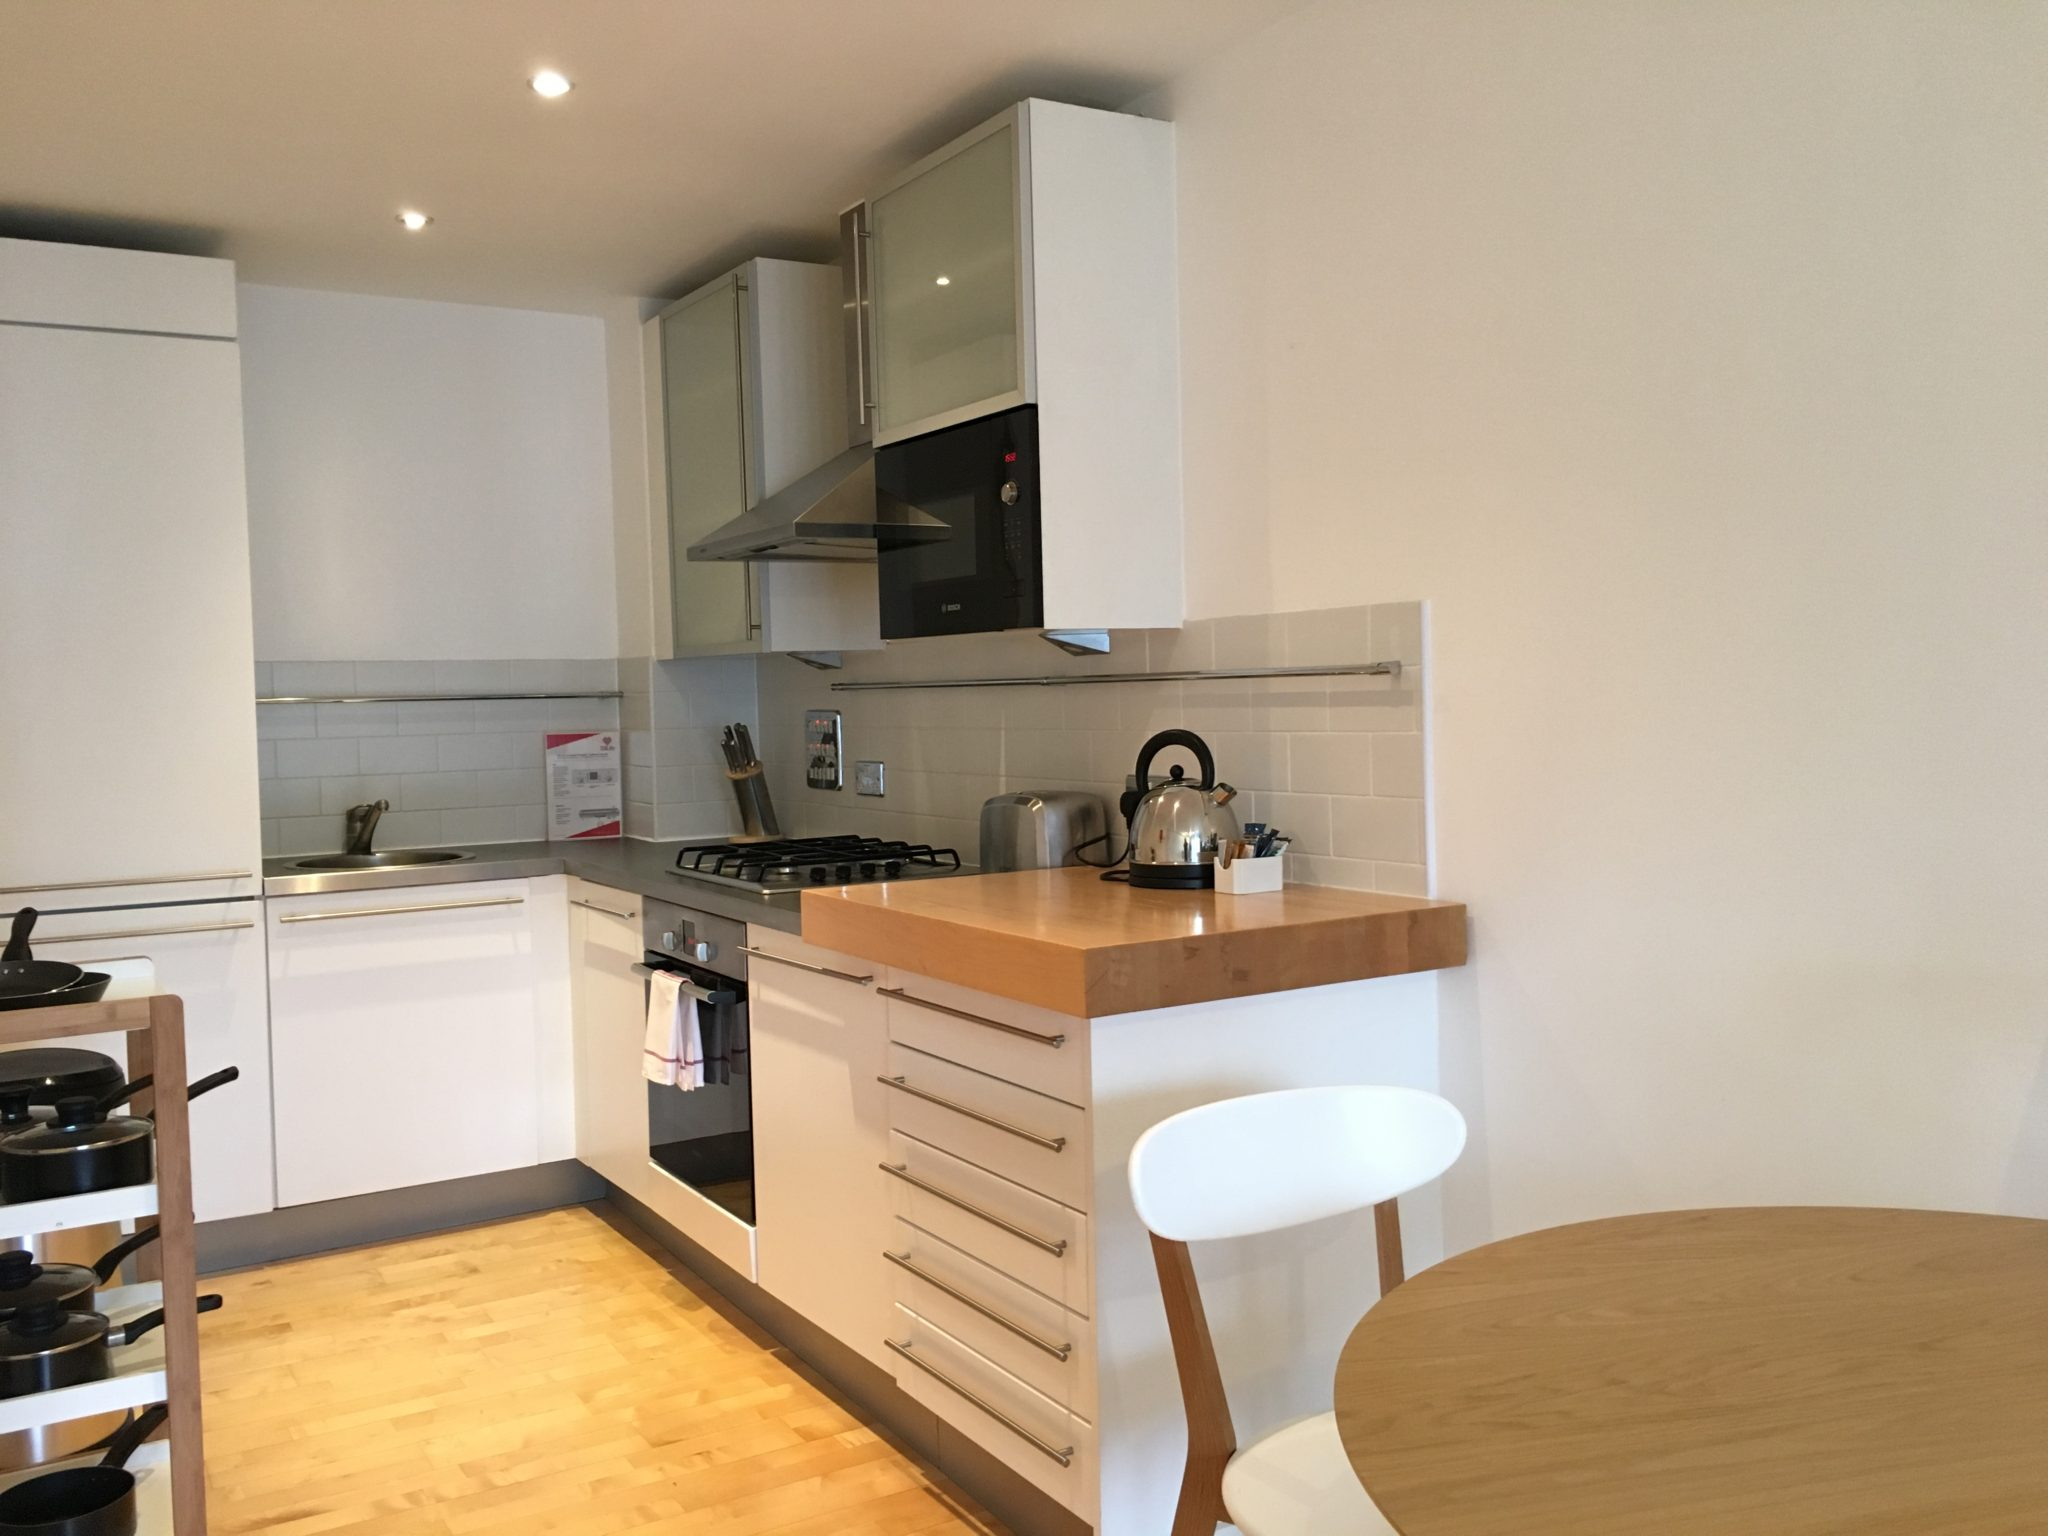 Serviced-Accommodation-Turnmill-St-London -Stylish-Farringdon-Executive-Apartments- -WiFi -Private-Balcony- -Fully-Equipped- -Urban-Stay